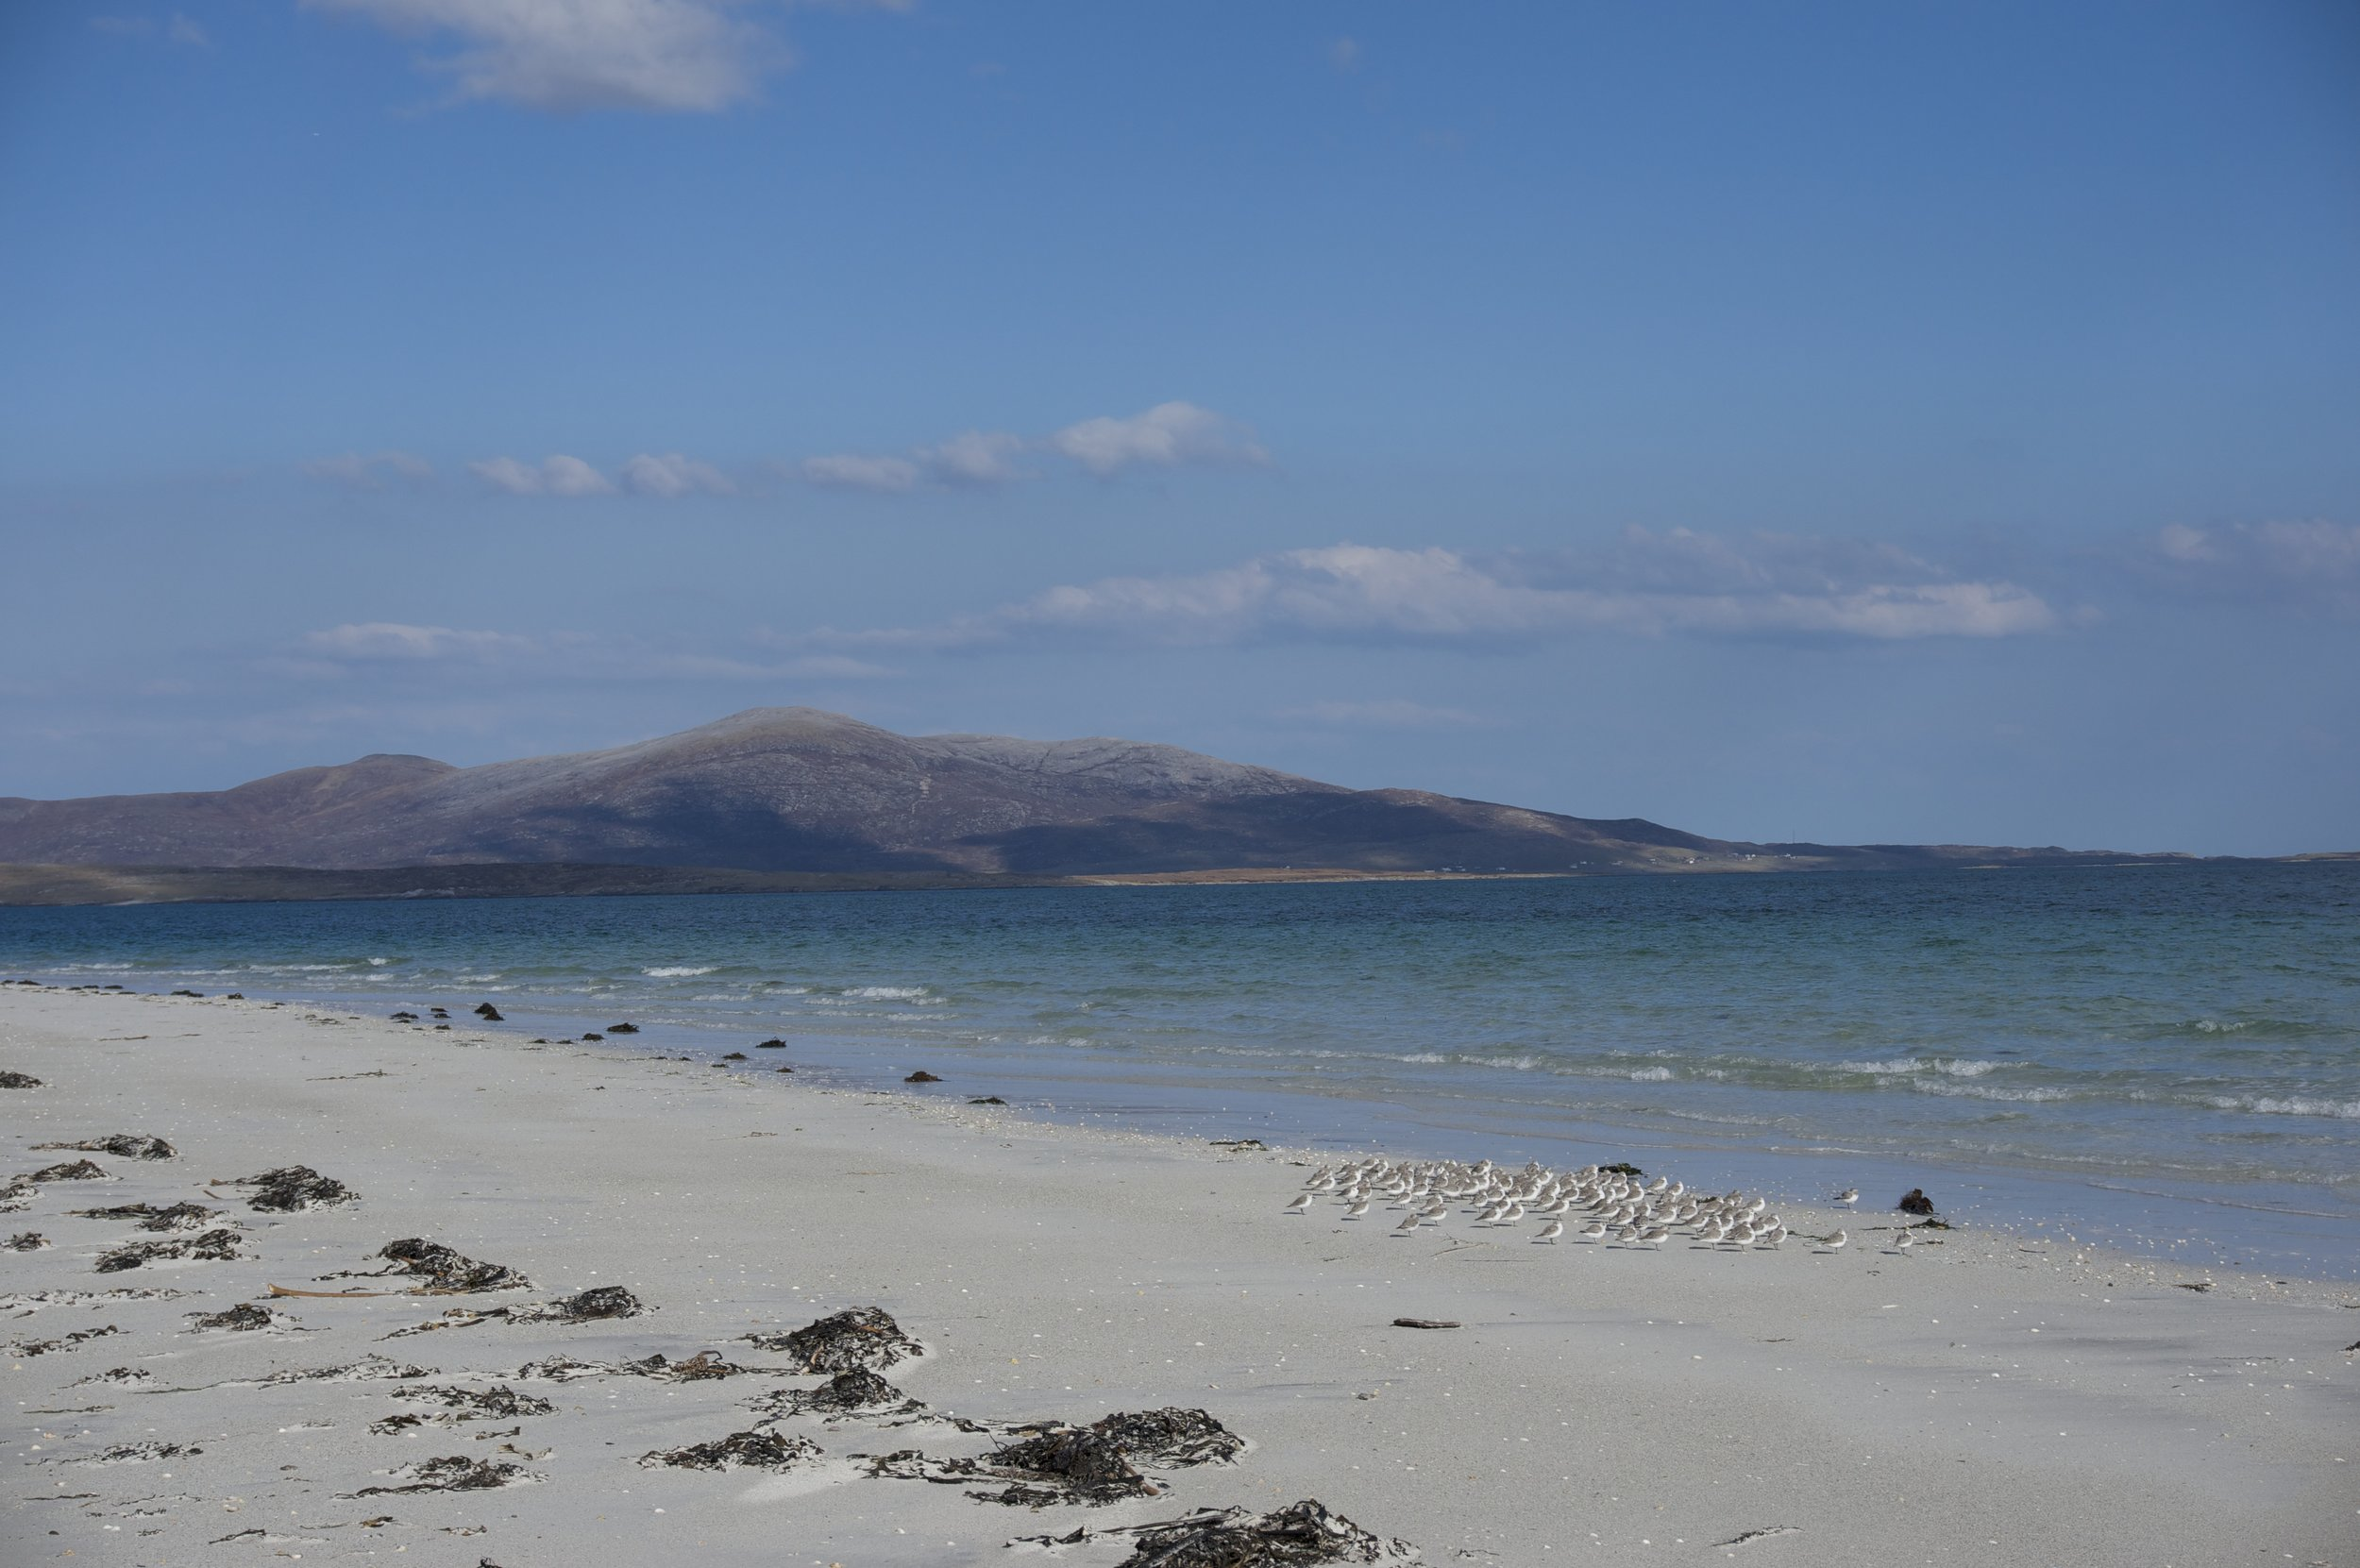 white shell beaches - Stay in Lamraig cottage and walk our stunning, soft, sandy, empty beaches. Sit quietly to watch bird life, catch the glimpse of an otter onthe rocks or porpoises off the North shore.